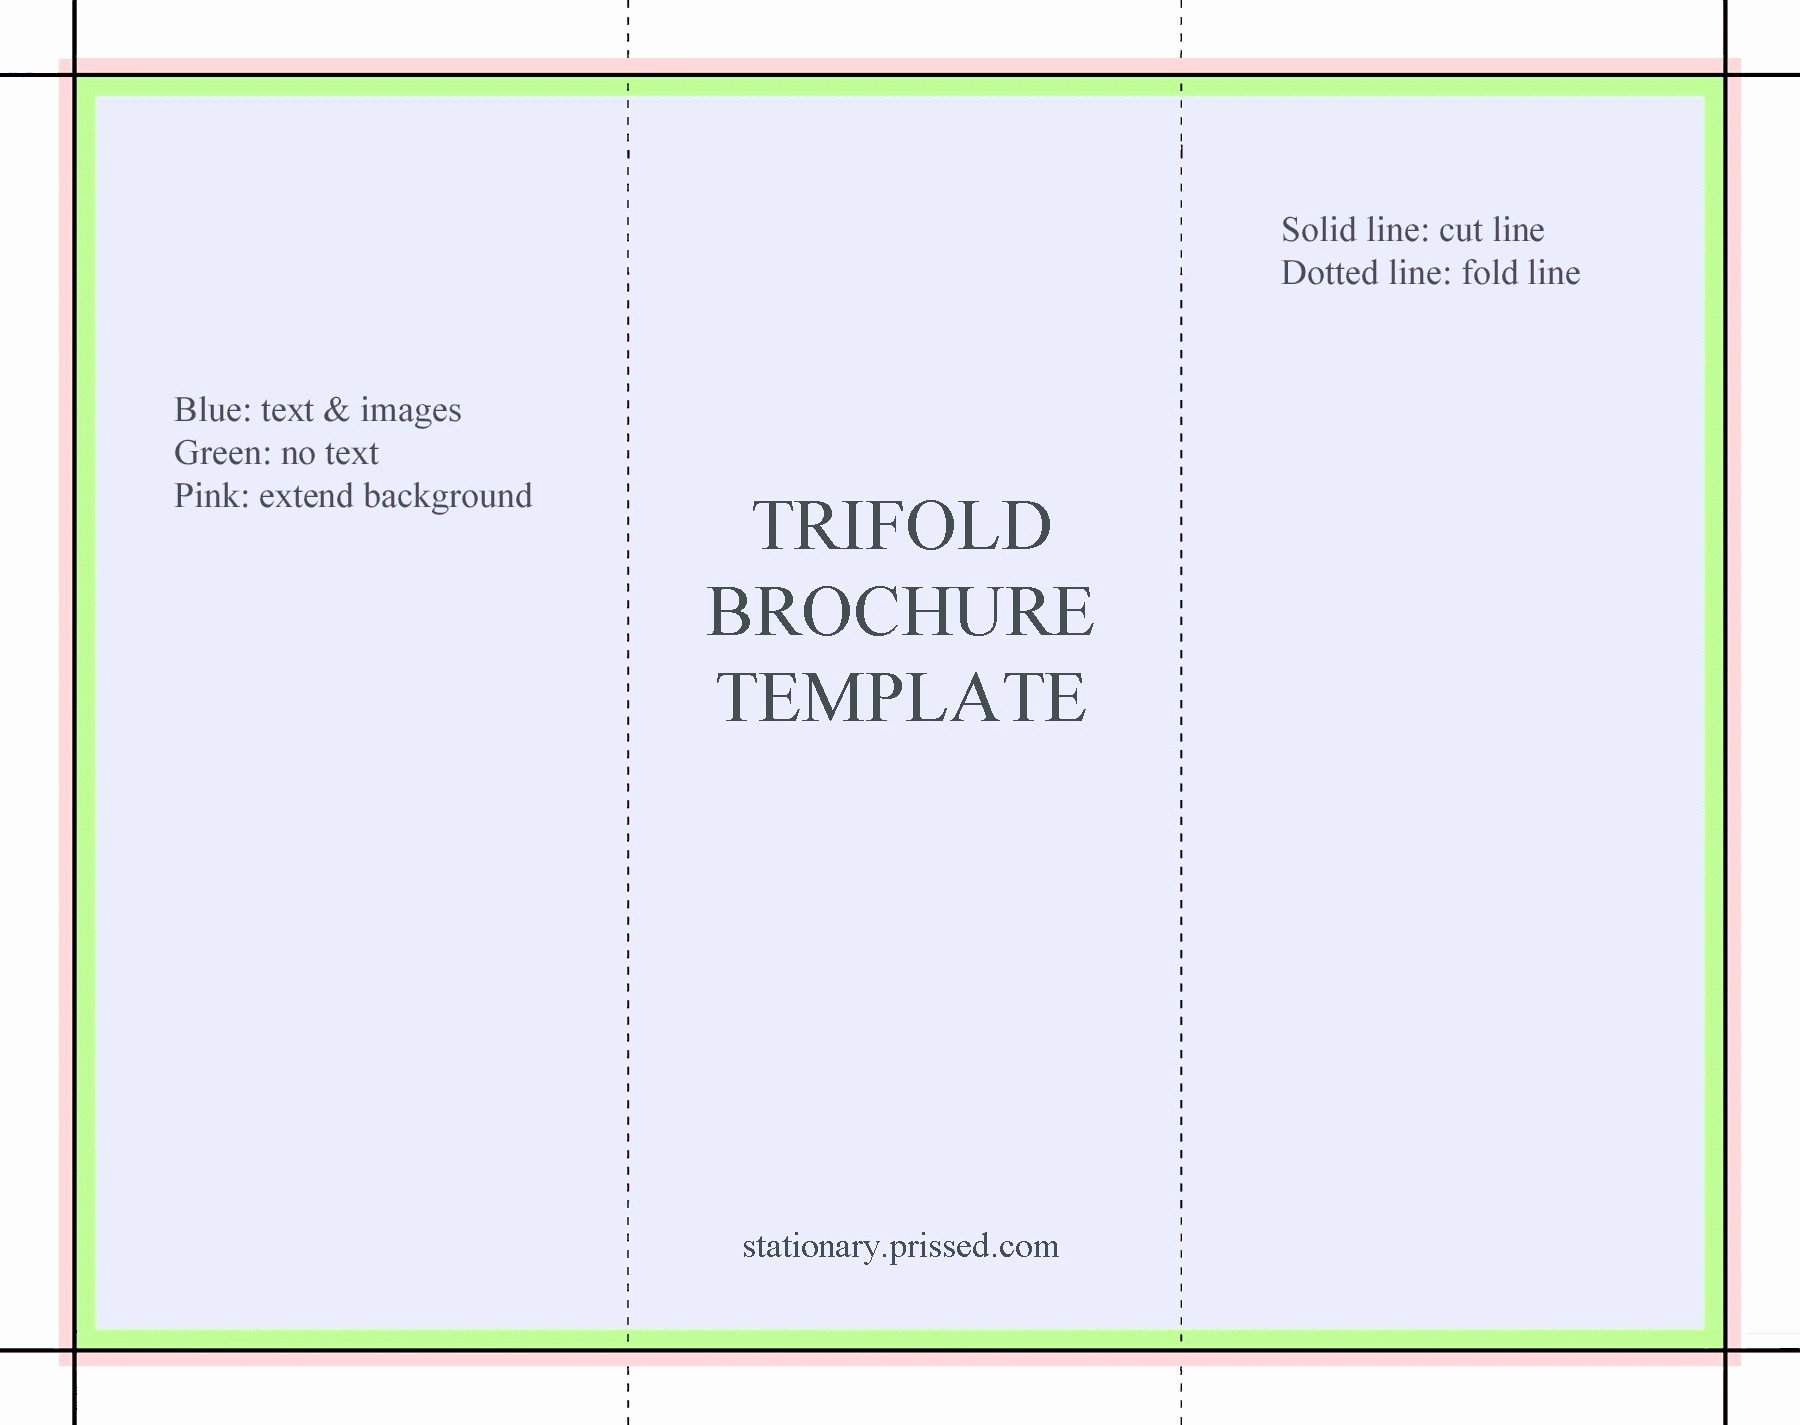 Trifold Template Google Docs Luxury Tri Fold Brochure Google Docs Template Reeviewer